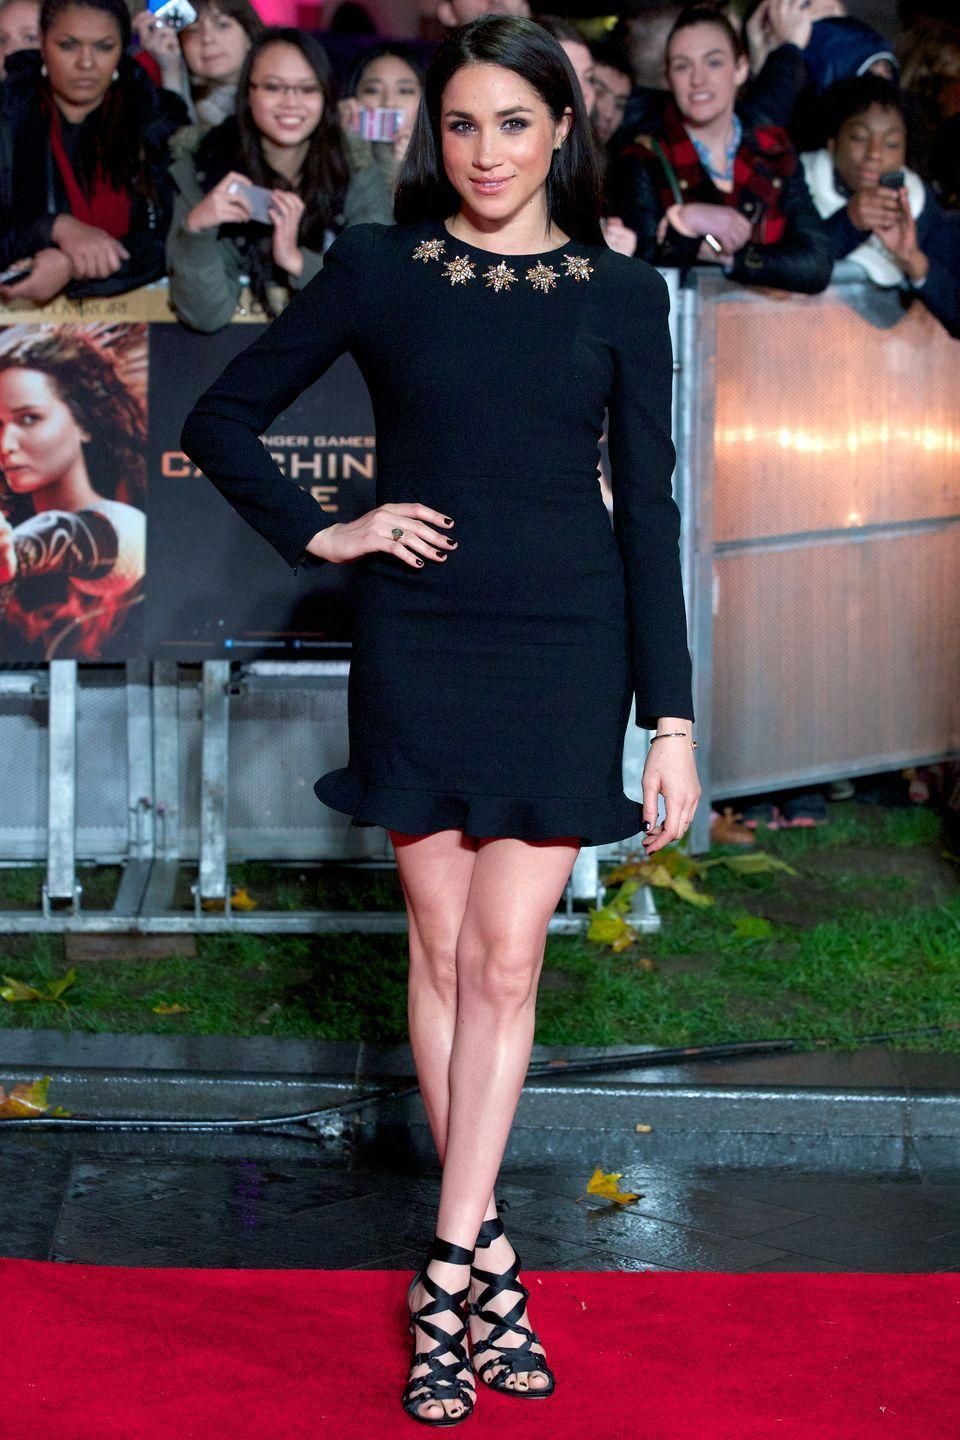 <p>Meghan wore this Alexander McQueen embellished wool dress for the World premier of the film 'The Hunger Games: Catching Fire' in Leicester Square, November 2013</p>